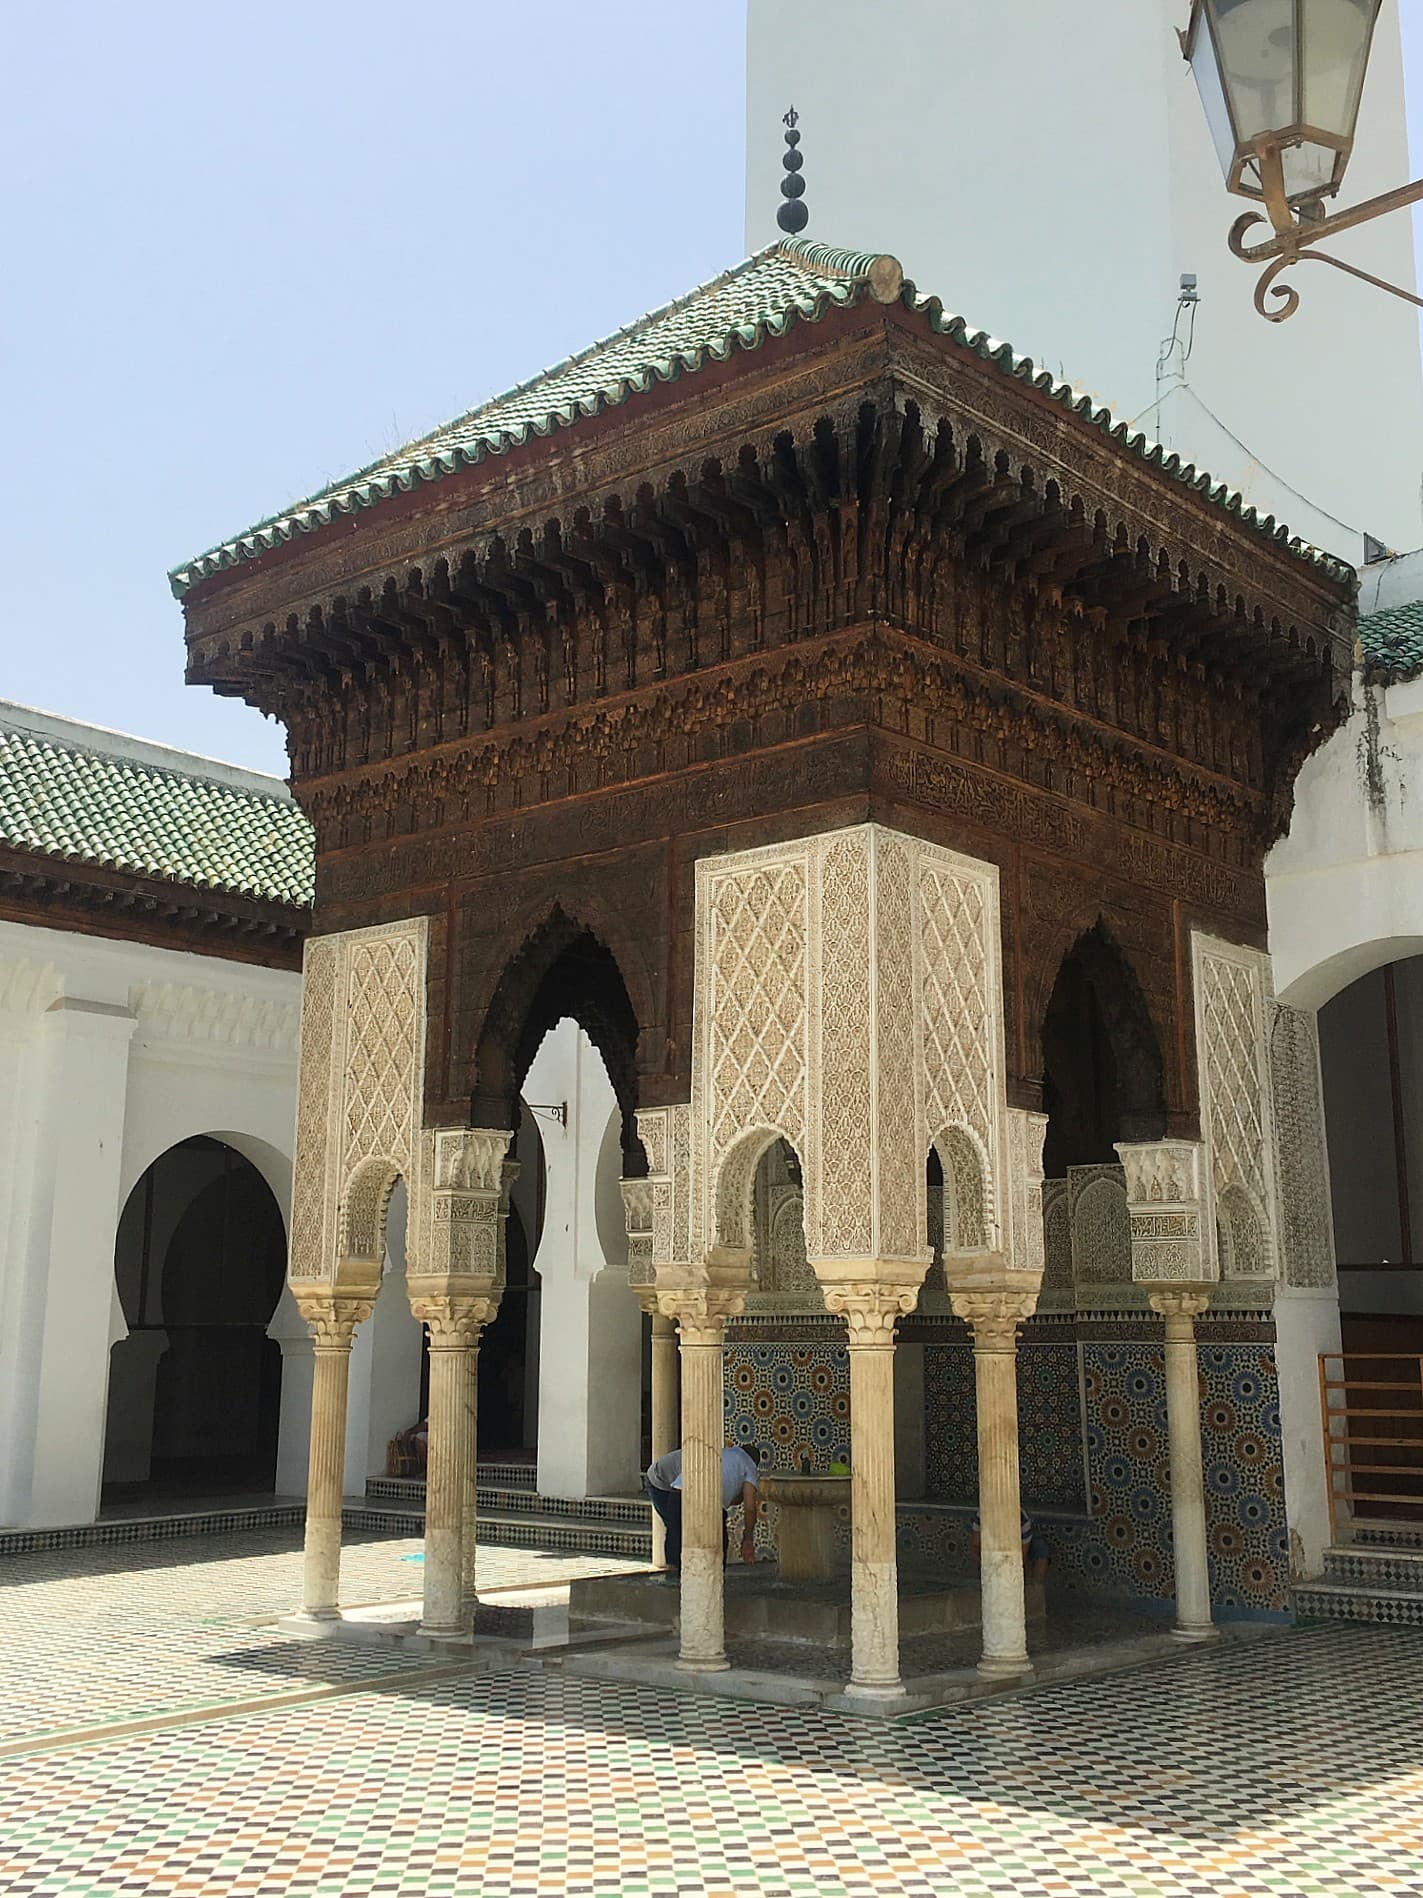 Courtyard of Al-Qarawiyyin.